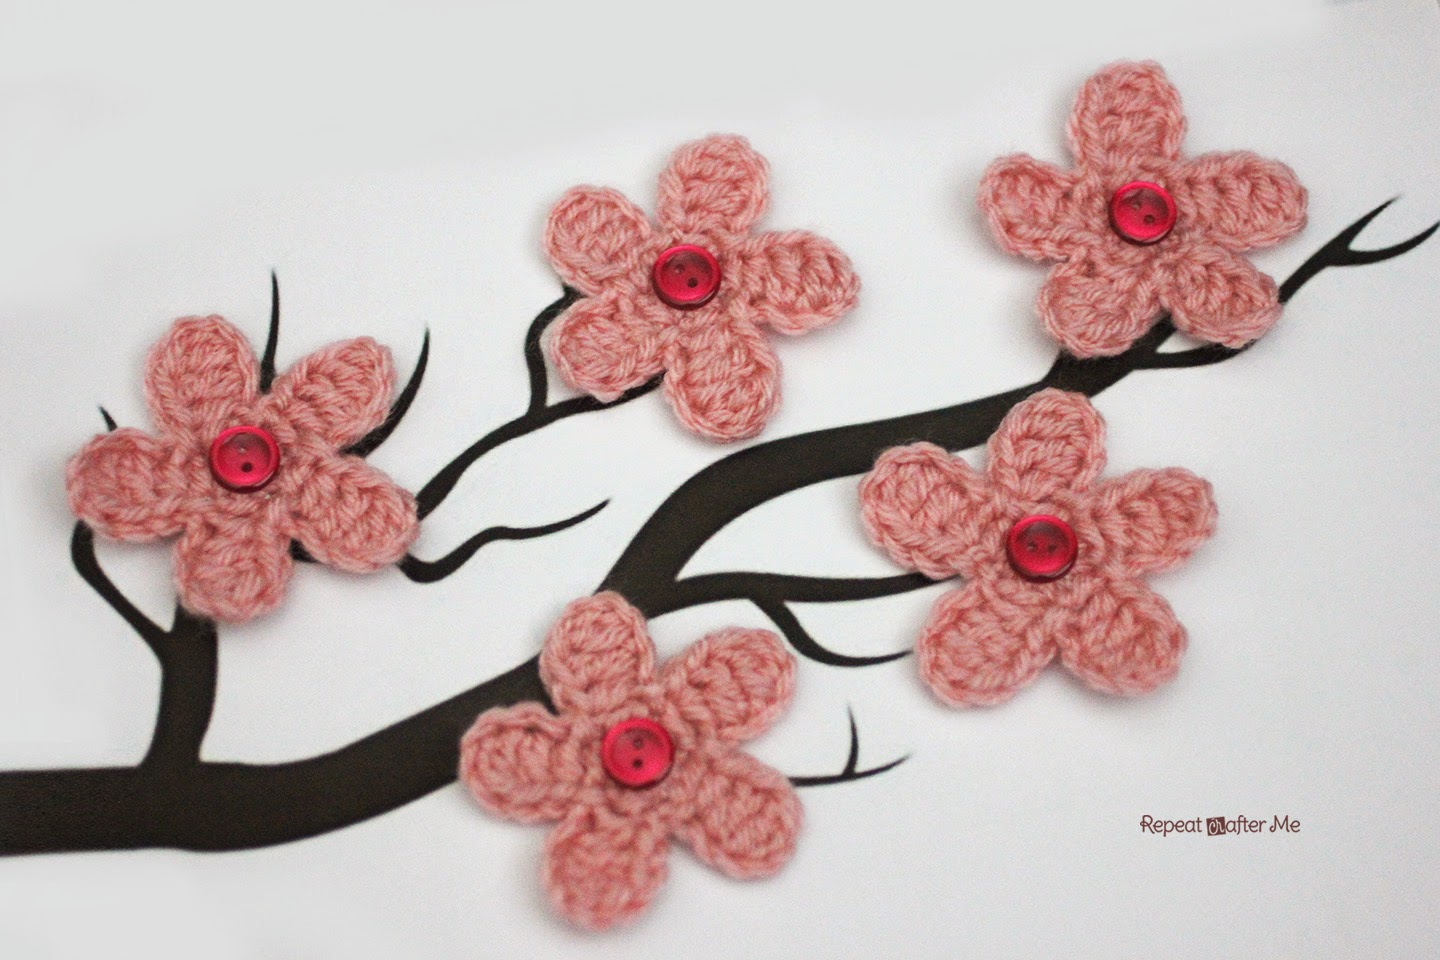 Cherry Blossom Flower Crochet freePattern wonderfuldiy4 Wonderful DIY Crochet Cherry Blossom Flower with Free Pattern